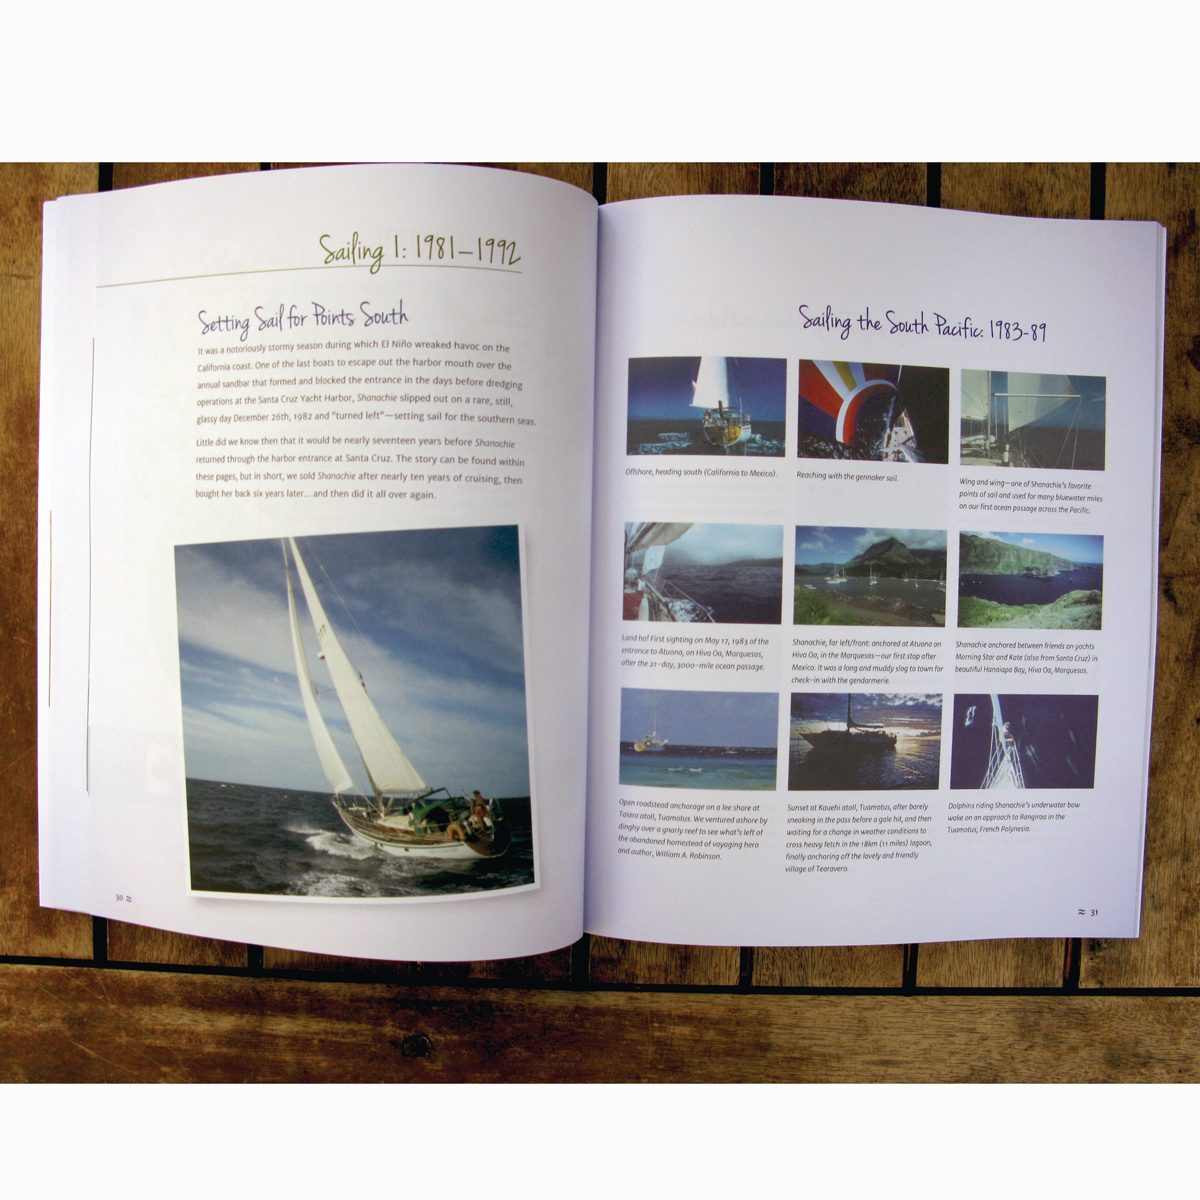 Shanachie: A Wooden Boat Story open to a page spread on sailing in the South Pacific